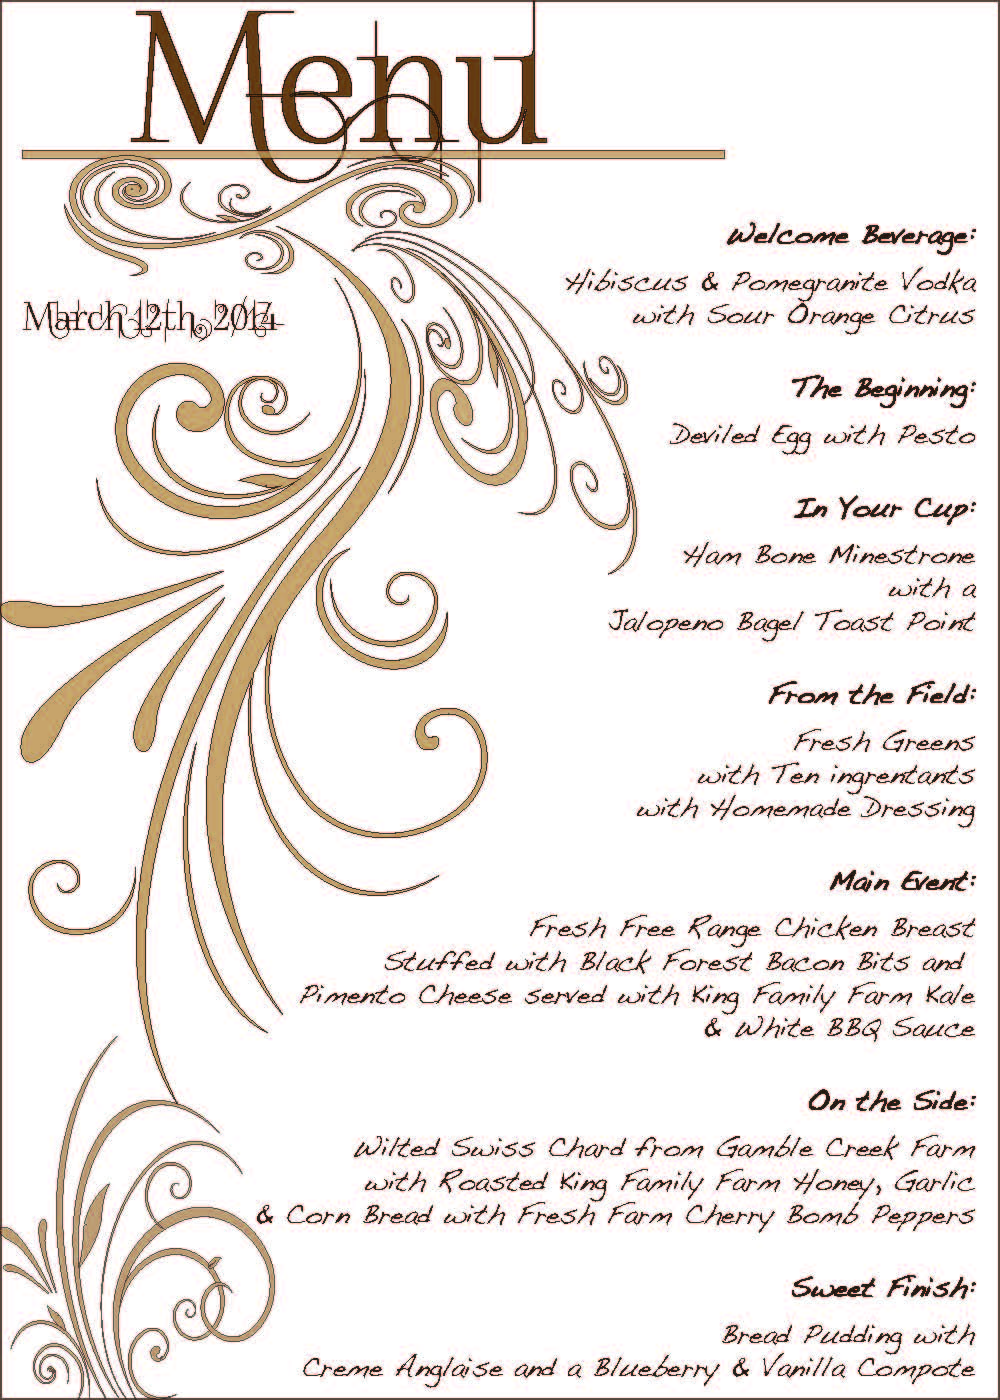 Farm Menu March 12th, 2014.jpg